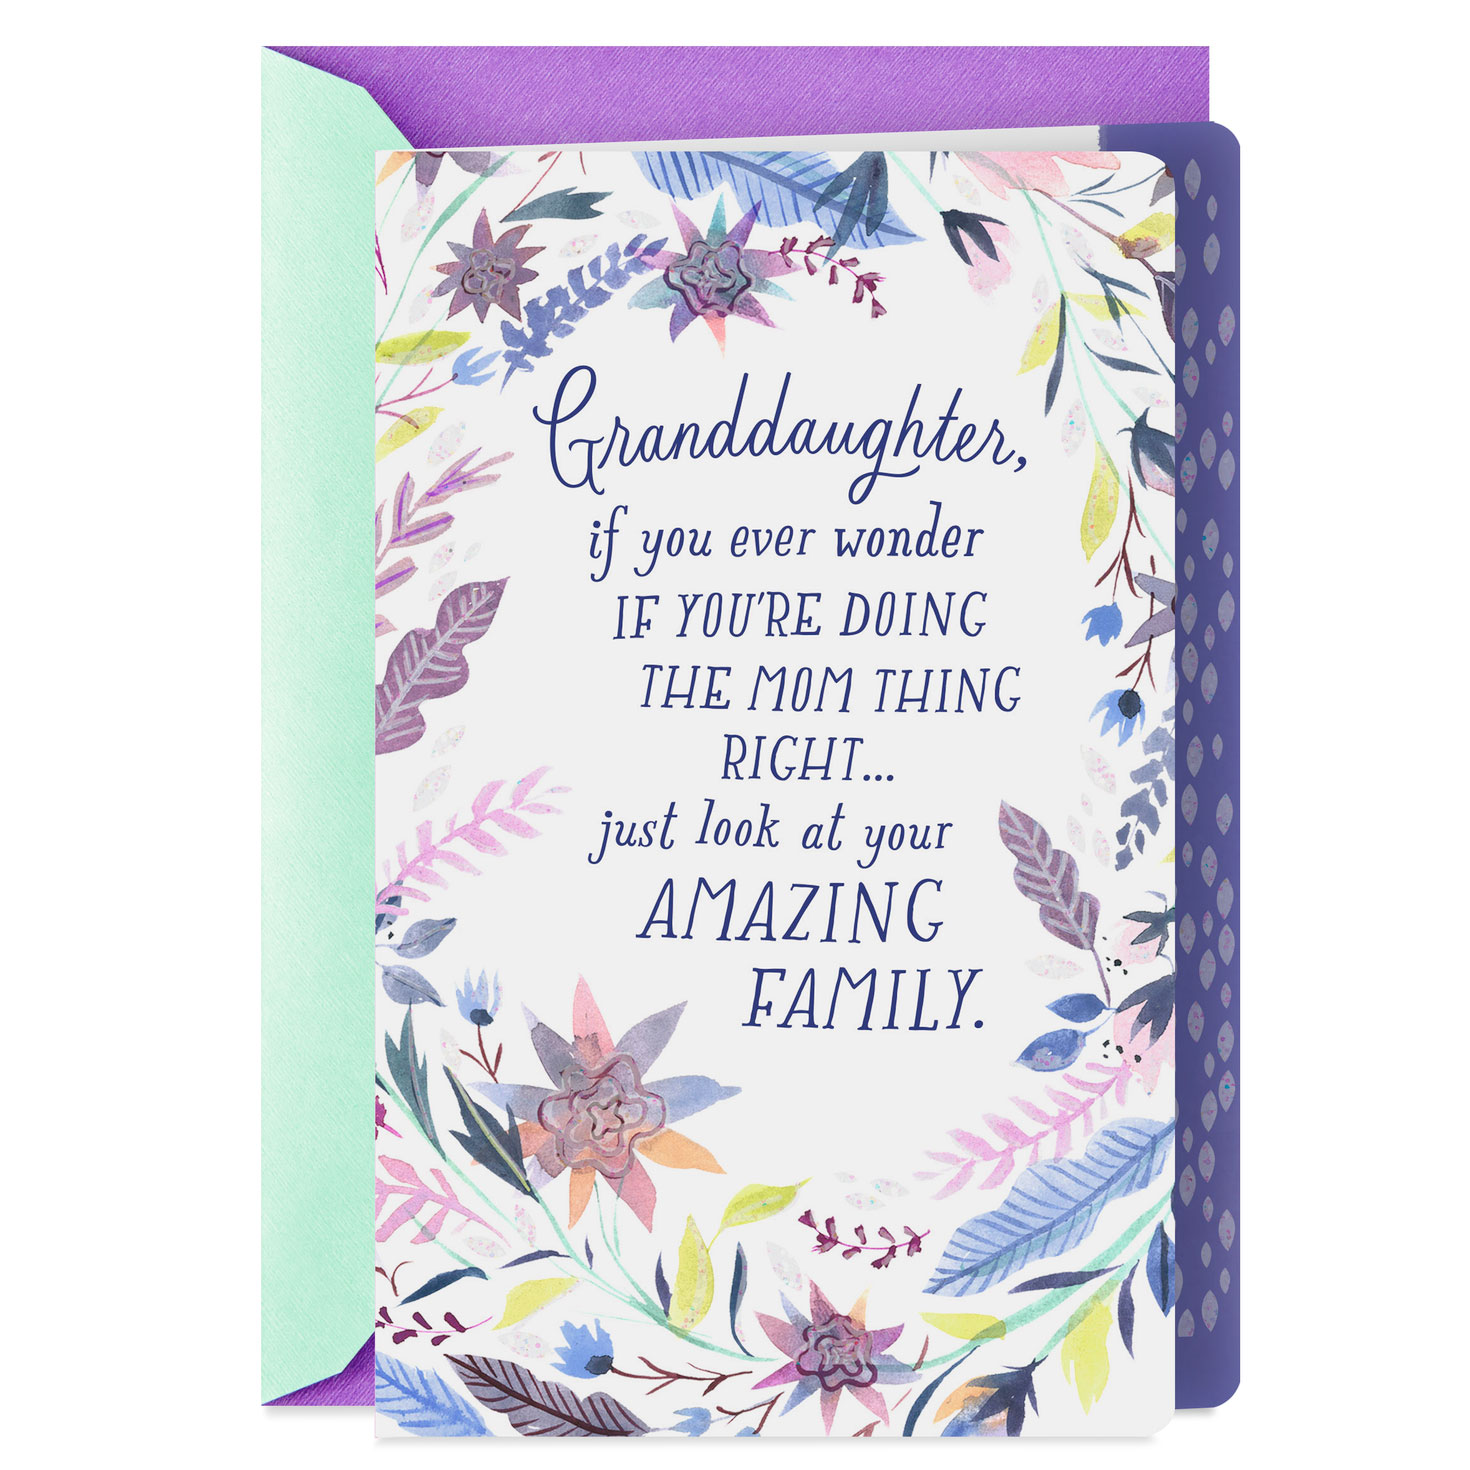 Your Amazing Family Mother's Day Card For Granddaughter